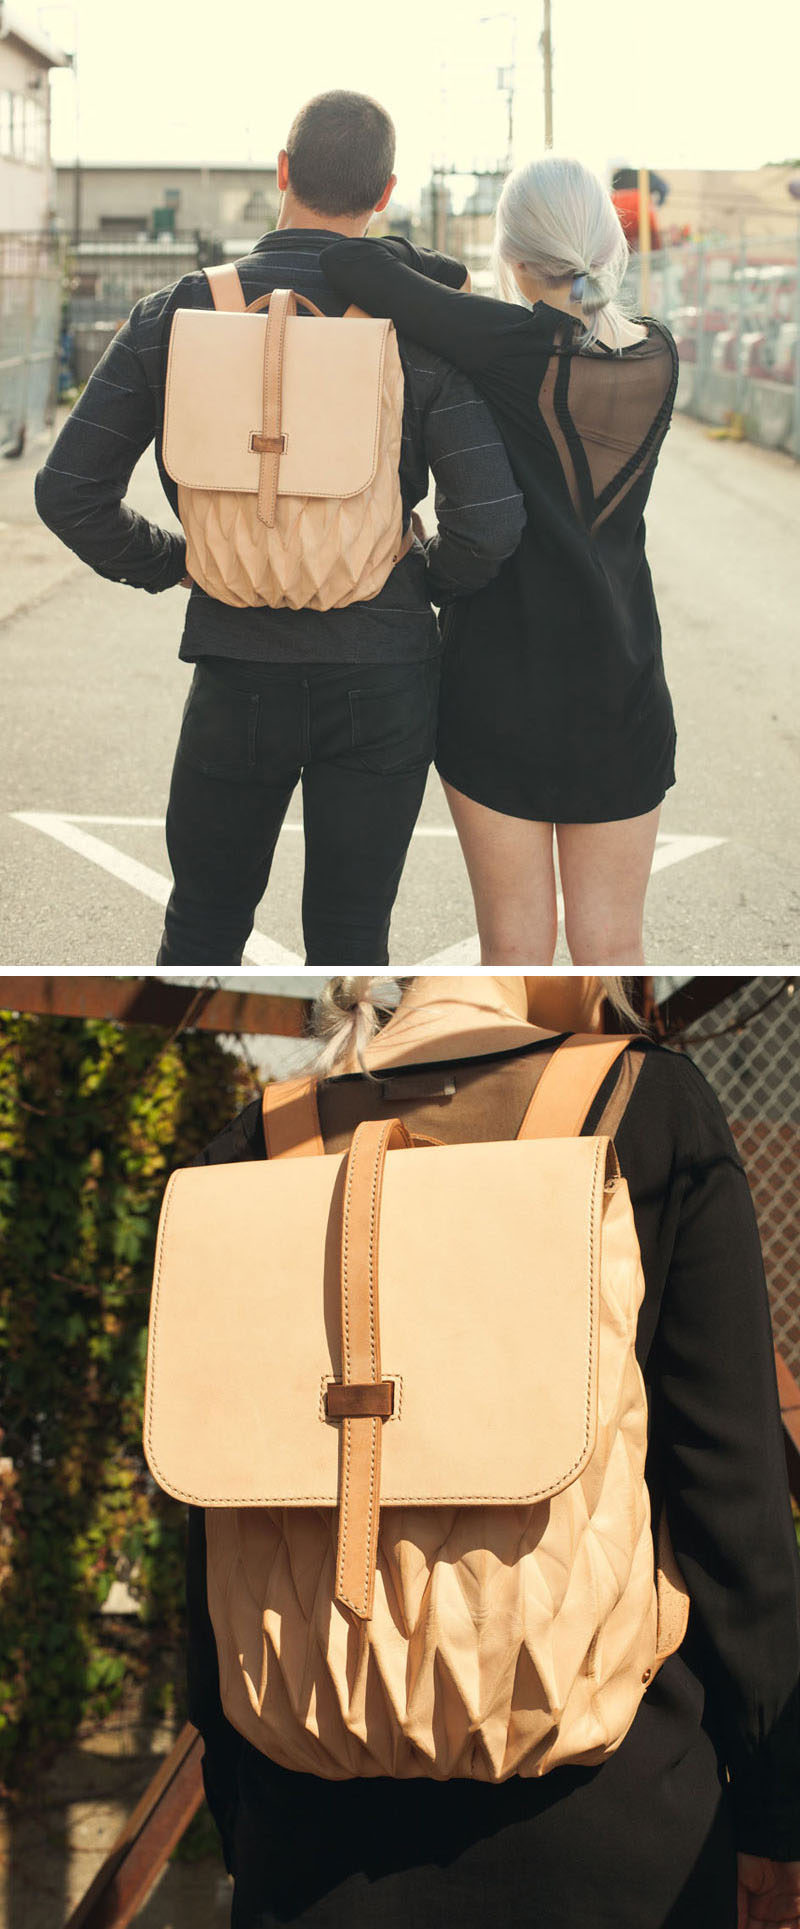 This backpack is made from vegetable tanned leather and was designed with versatility in mind. The origami folding system used on the body of the bag allows it to expand and contract as necessary to accommodate for both large and small objects.